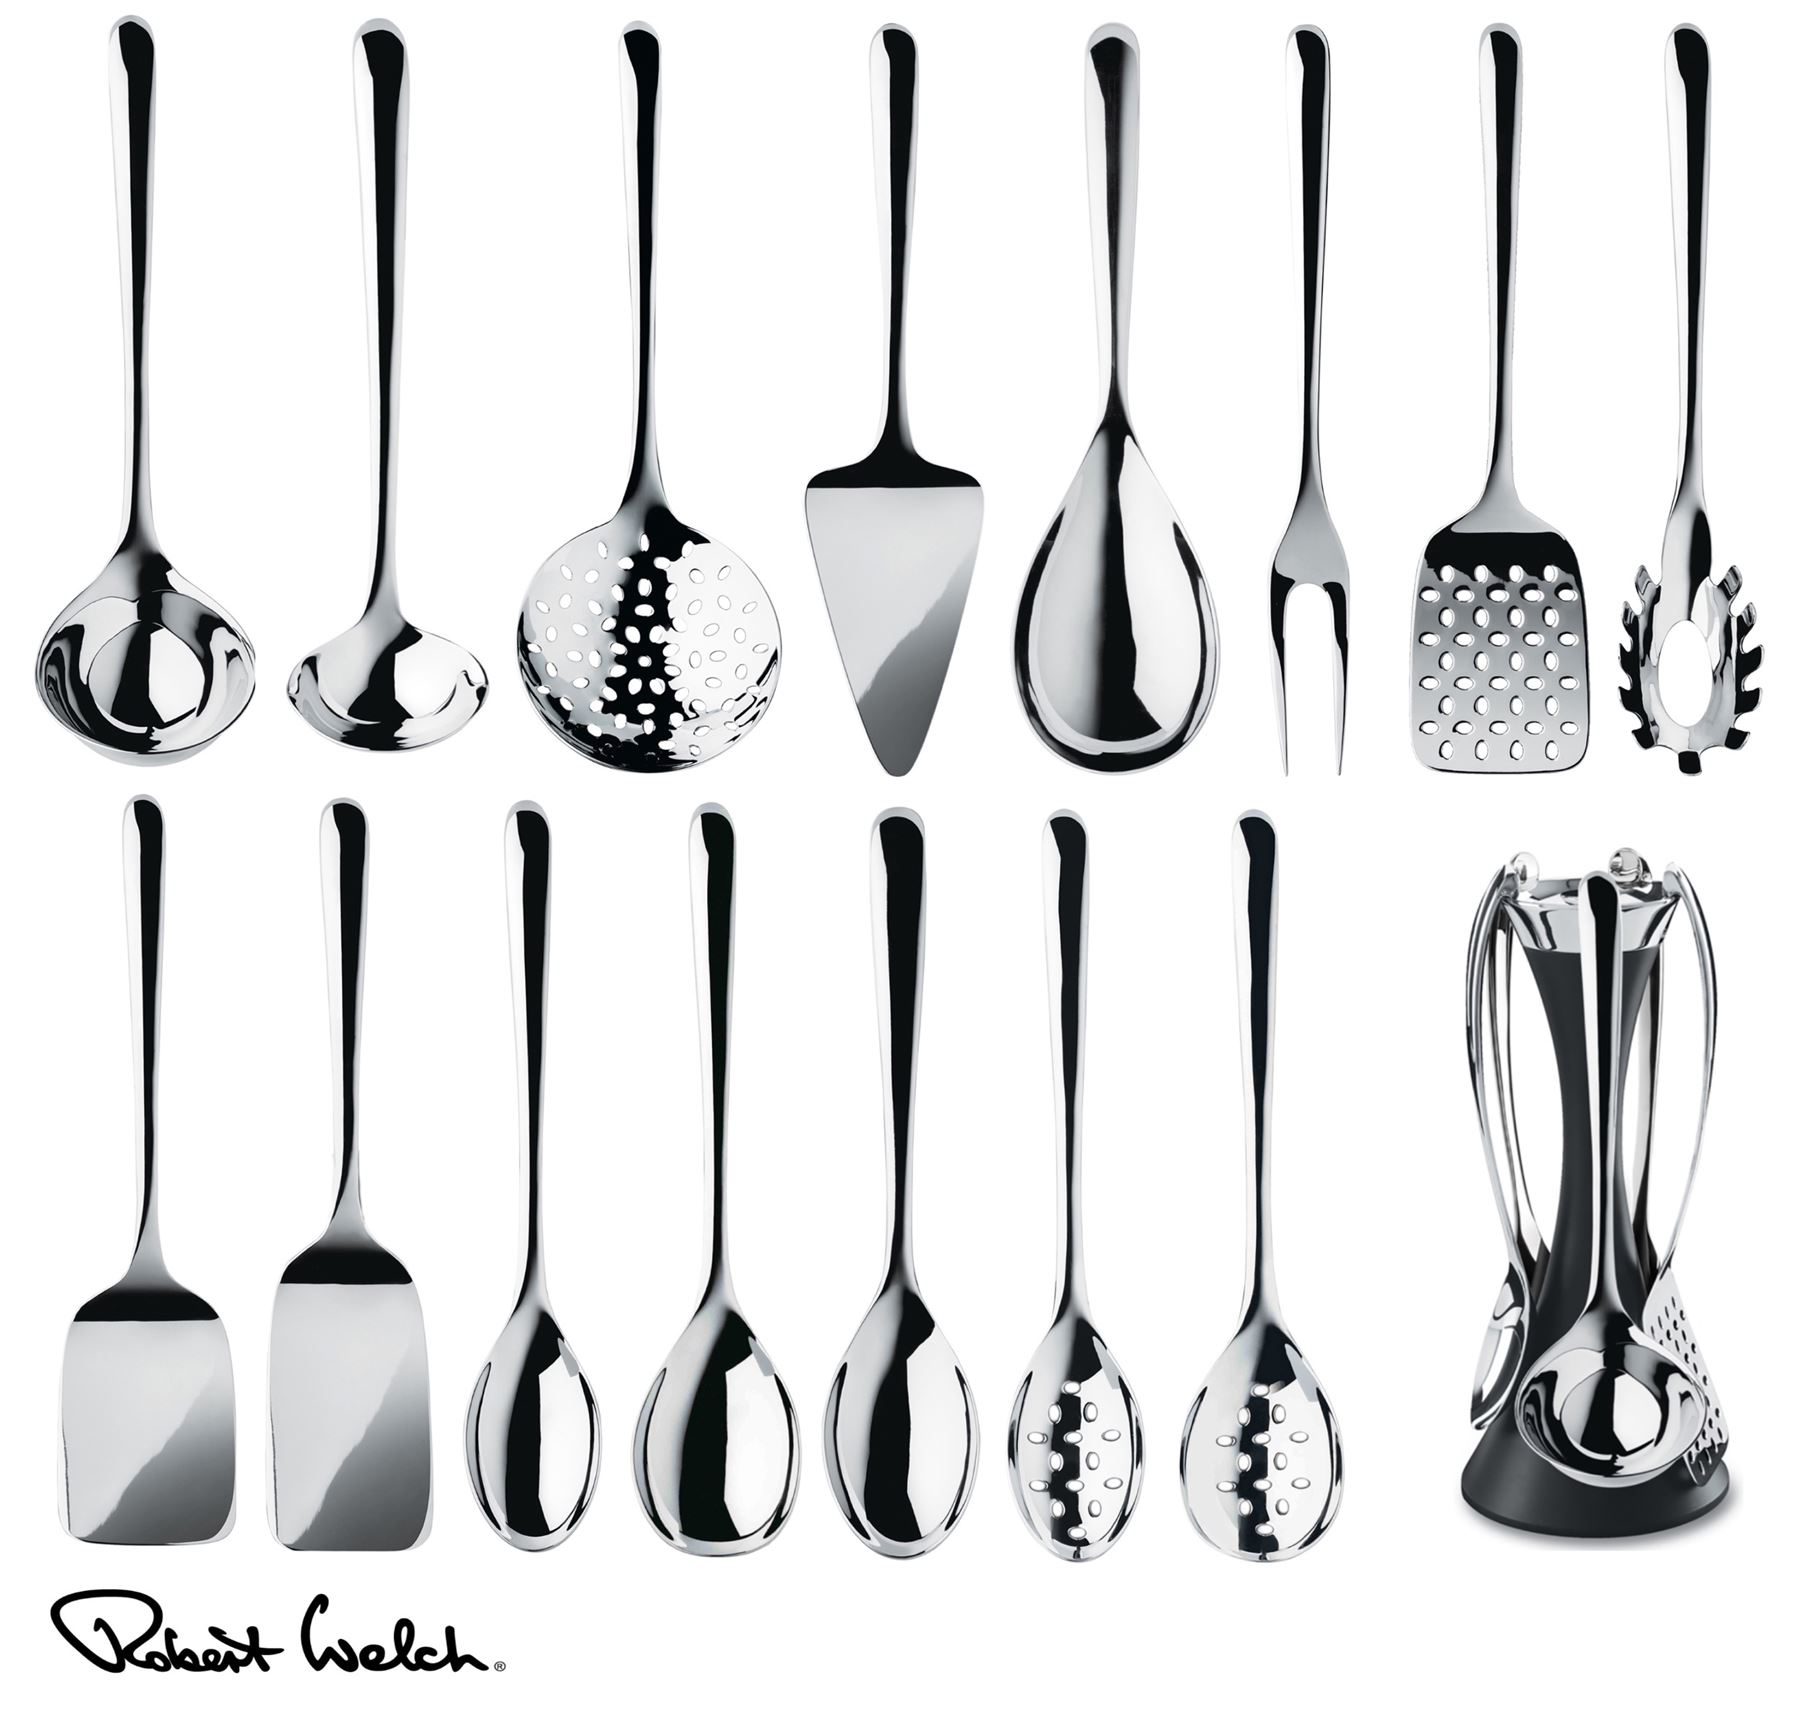 Robert Welch Signature Kitchen Utensils Set, Spoon, Turner or Server ...